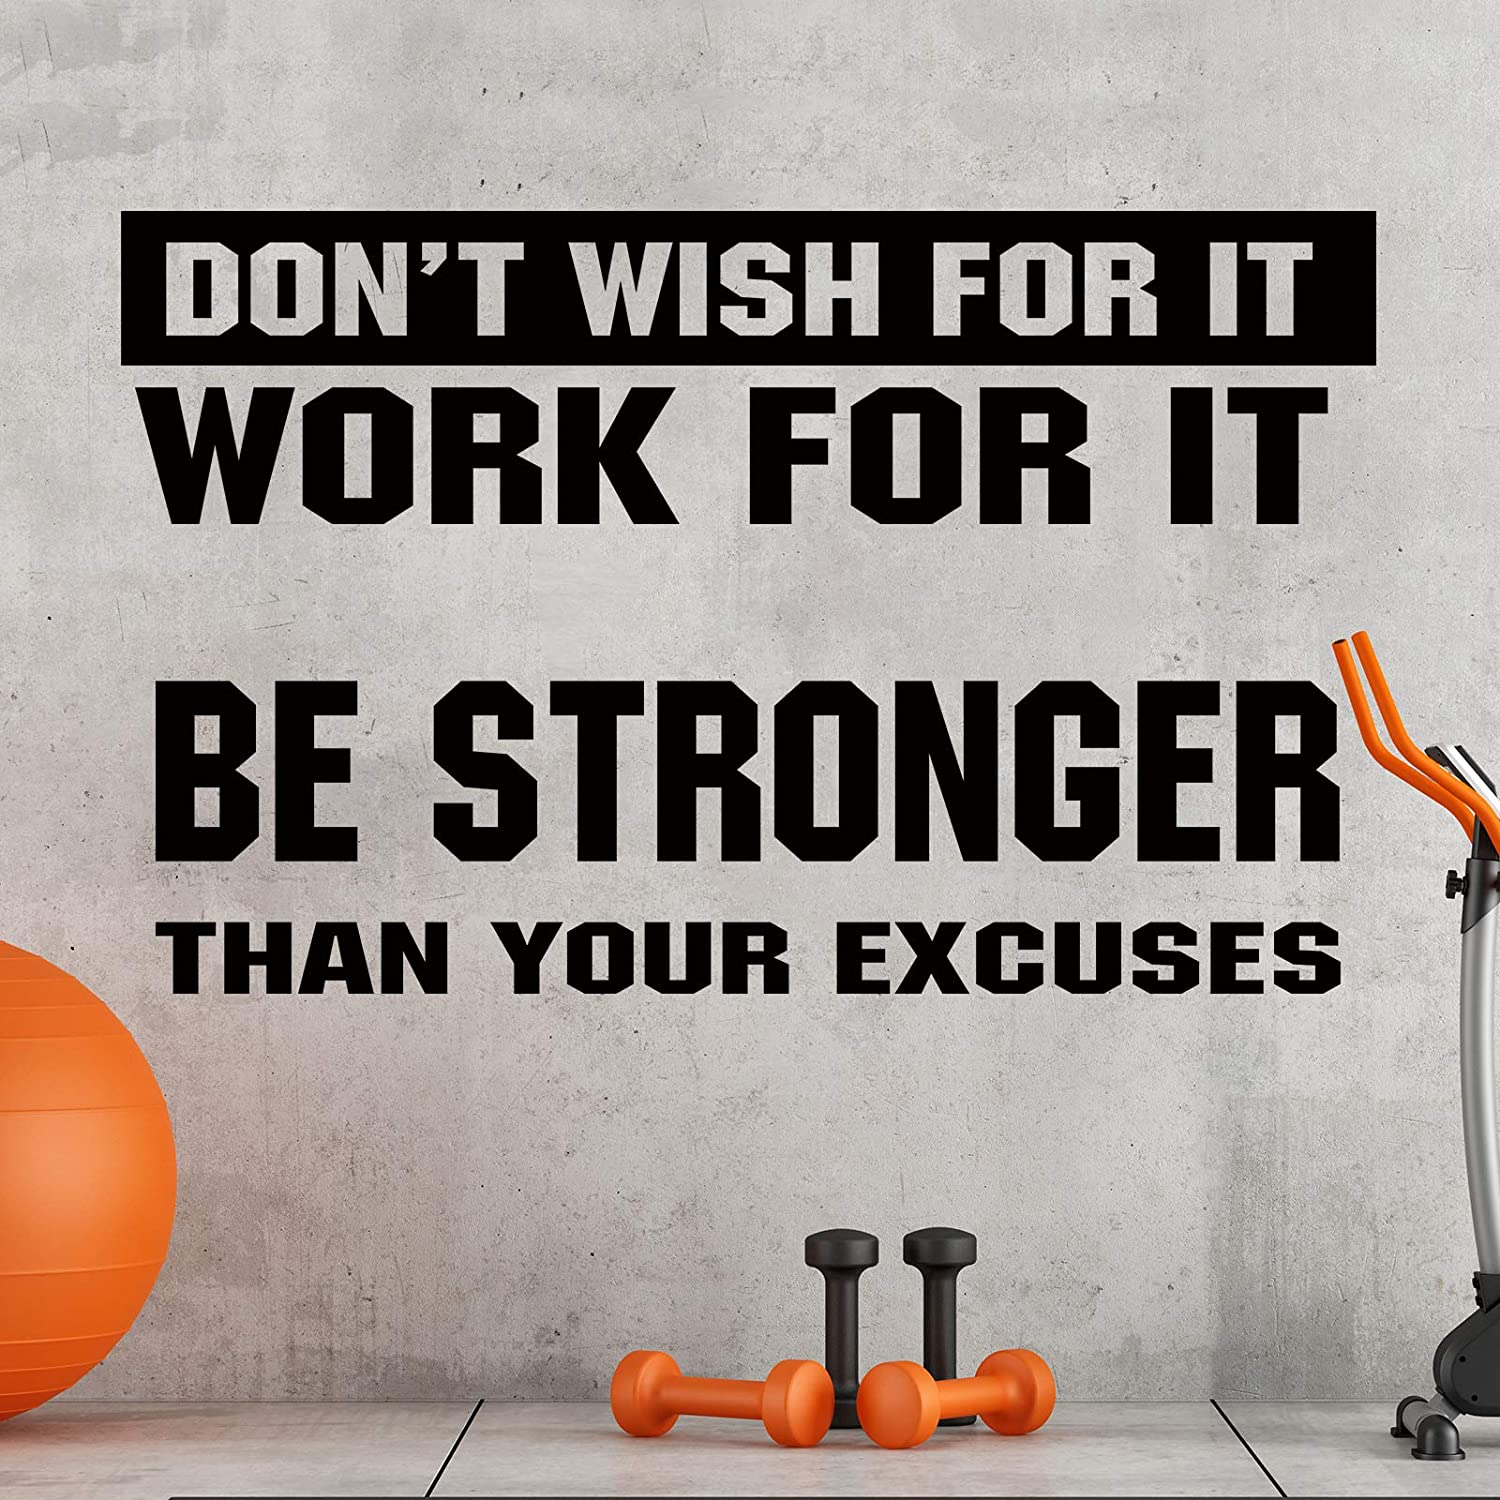 2 Pieces Gym Wall Decal Motivational Vinyl Wall Decals Be Stronger Than Your Excuses Sticker Don't Wish for it Work for it Large Gym Wall Quote Home Decor Stickers for Home Gym Yoga Exercise Fitness